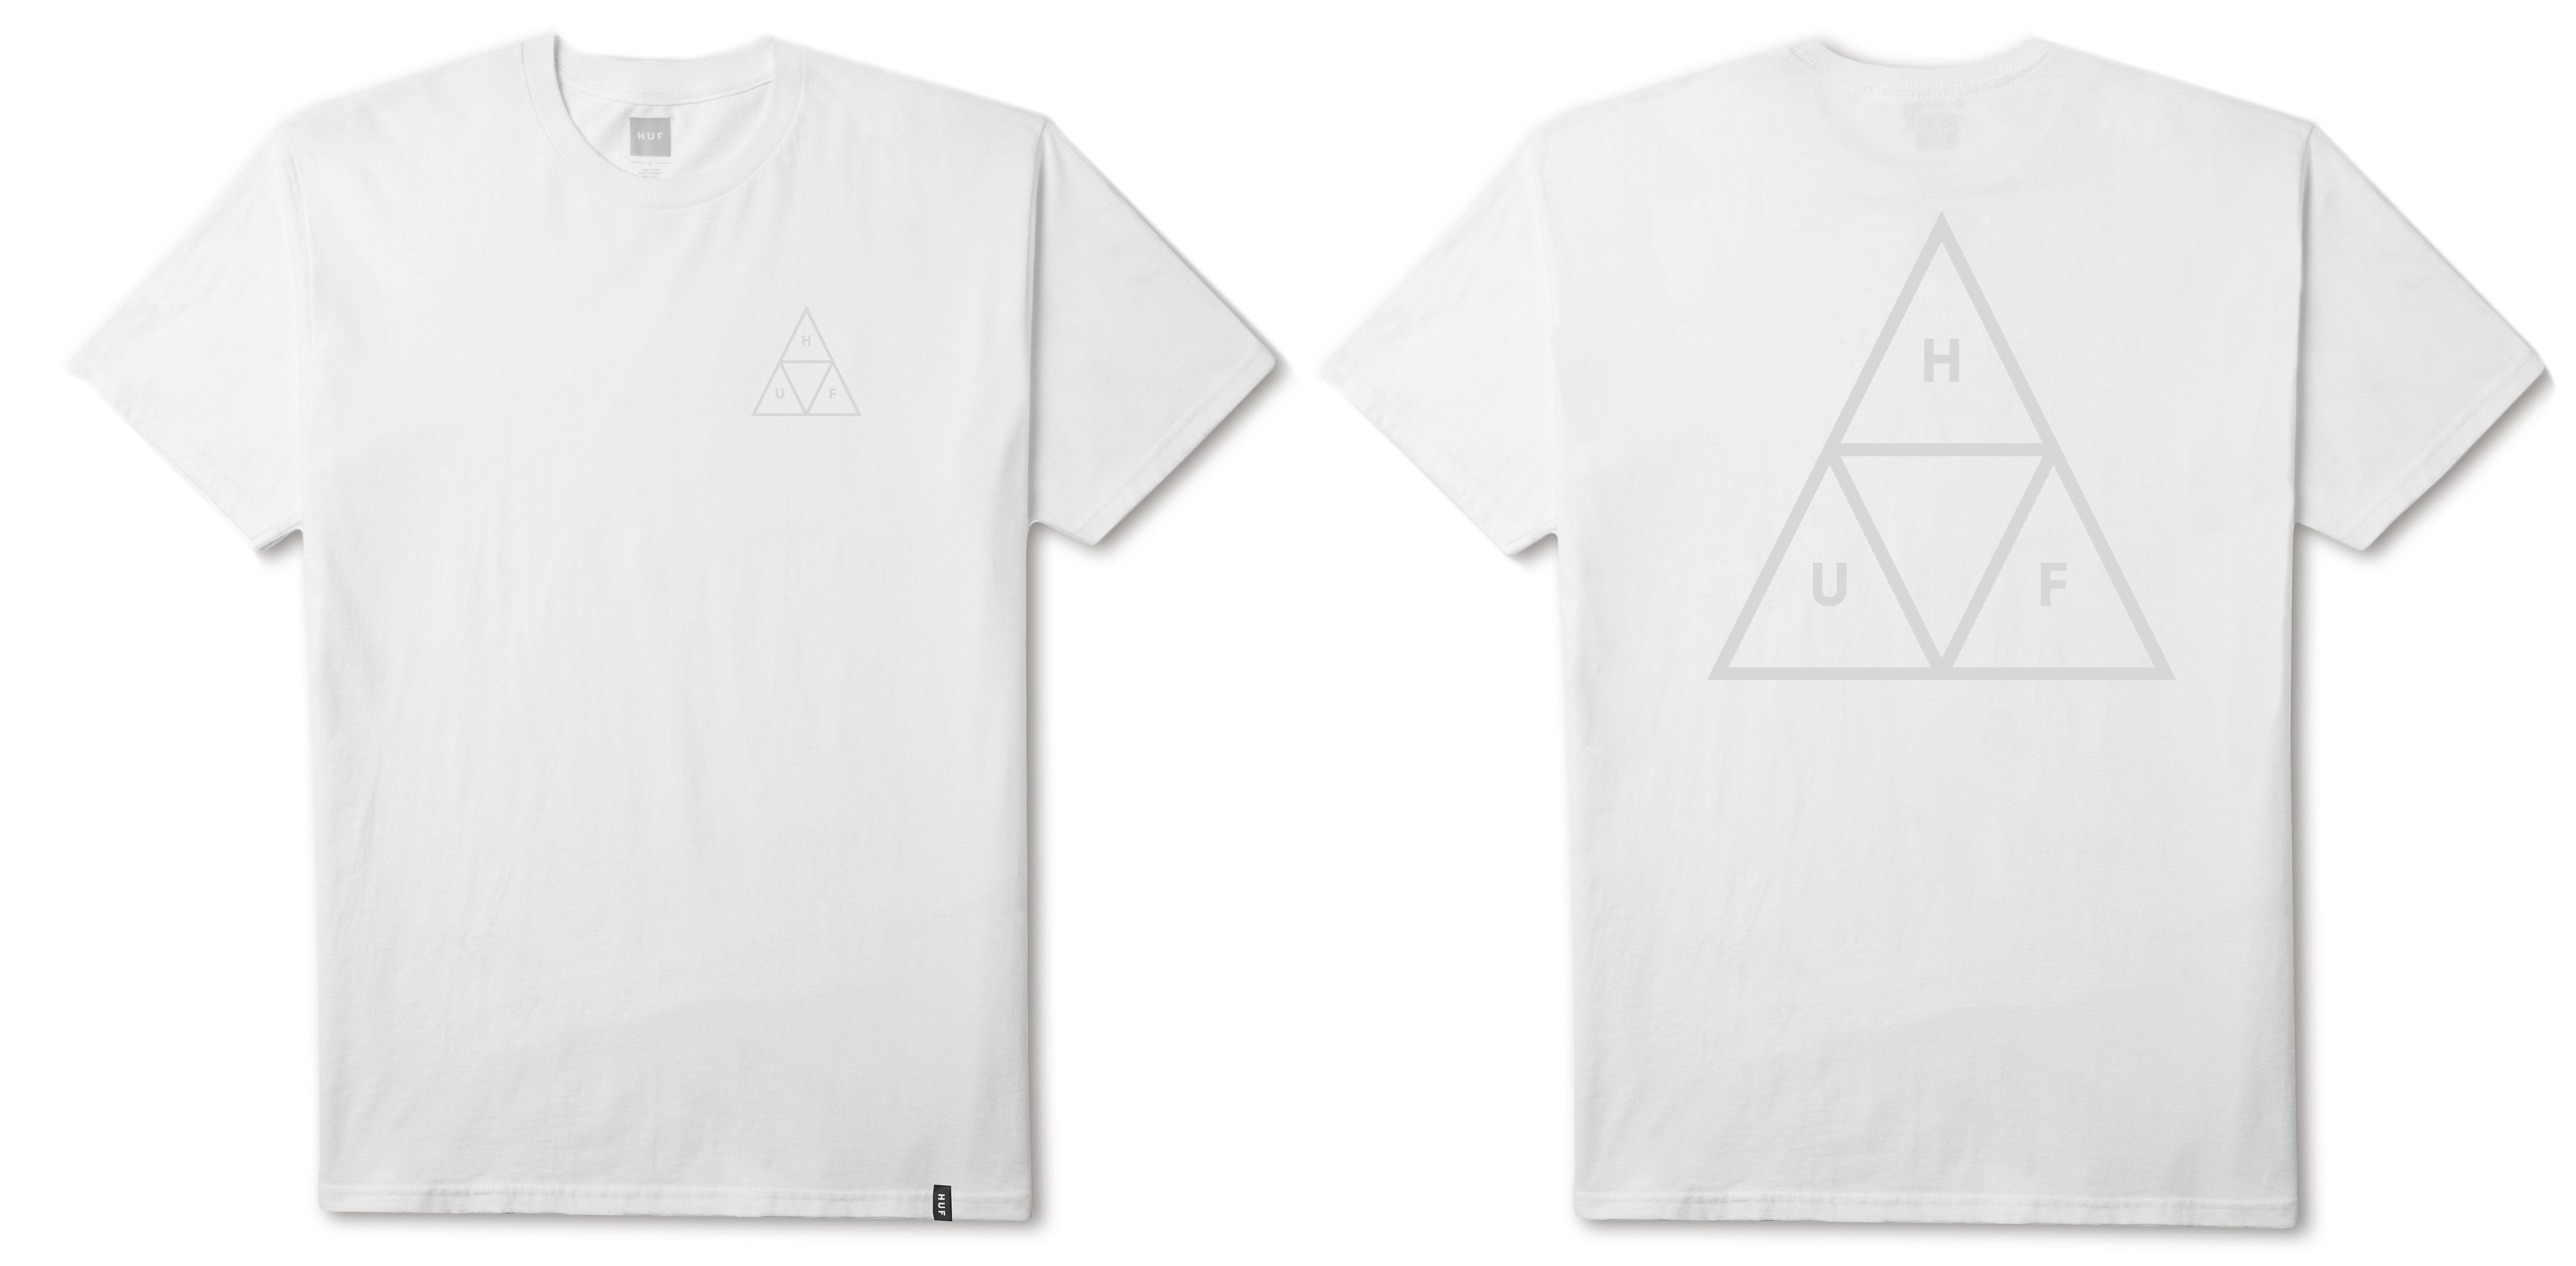 Футболка HUF Triple Triangle Puff tee white